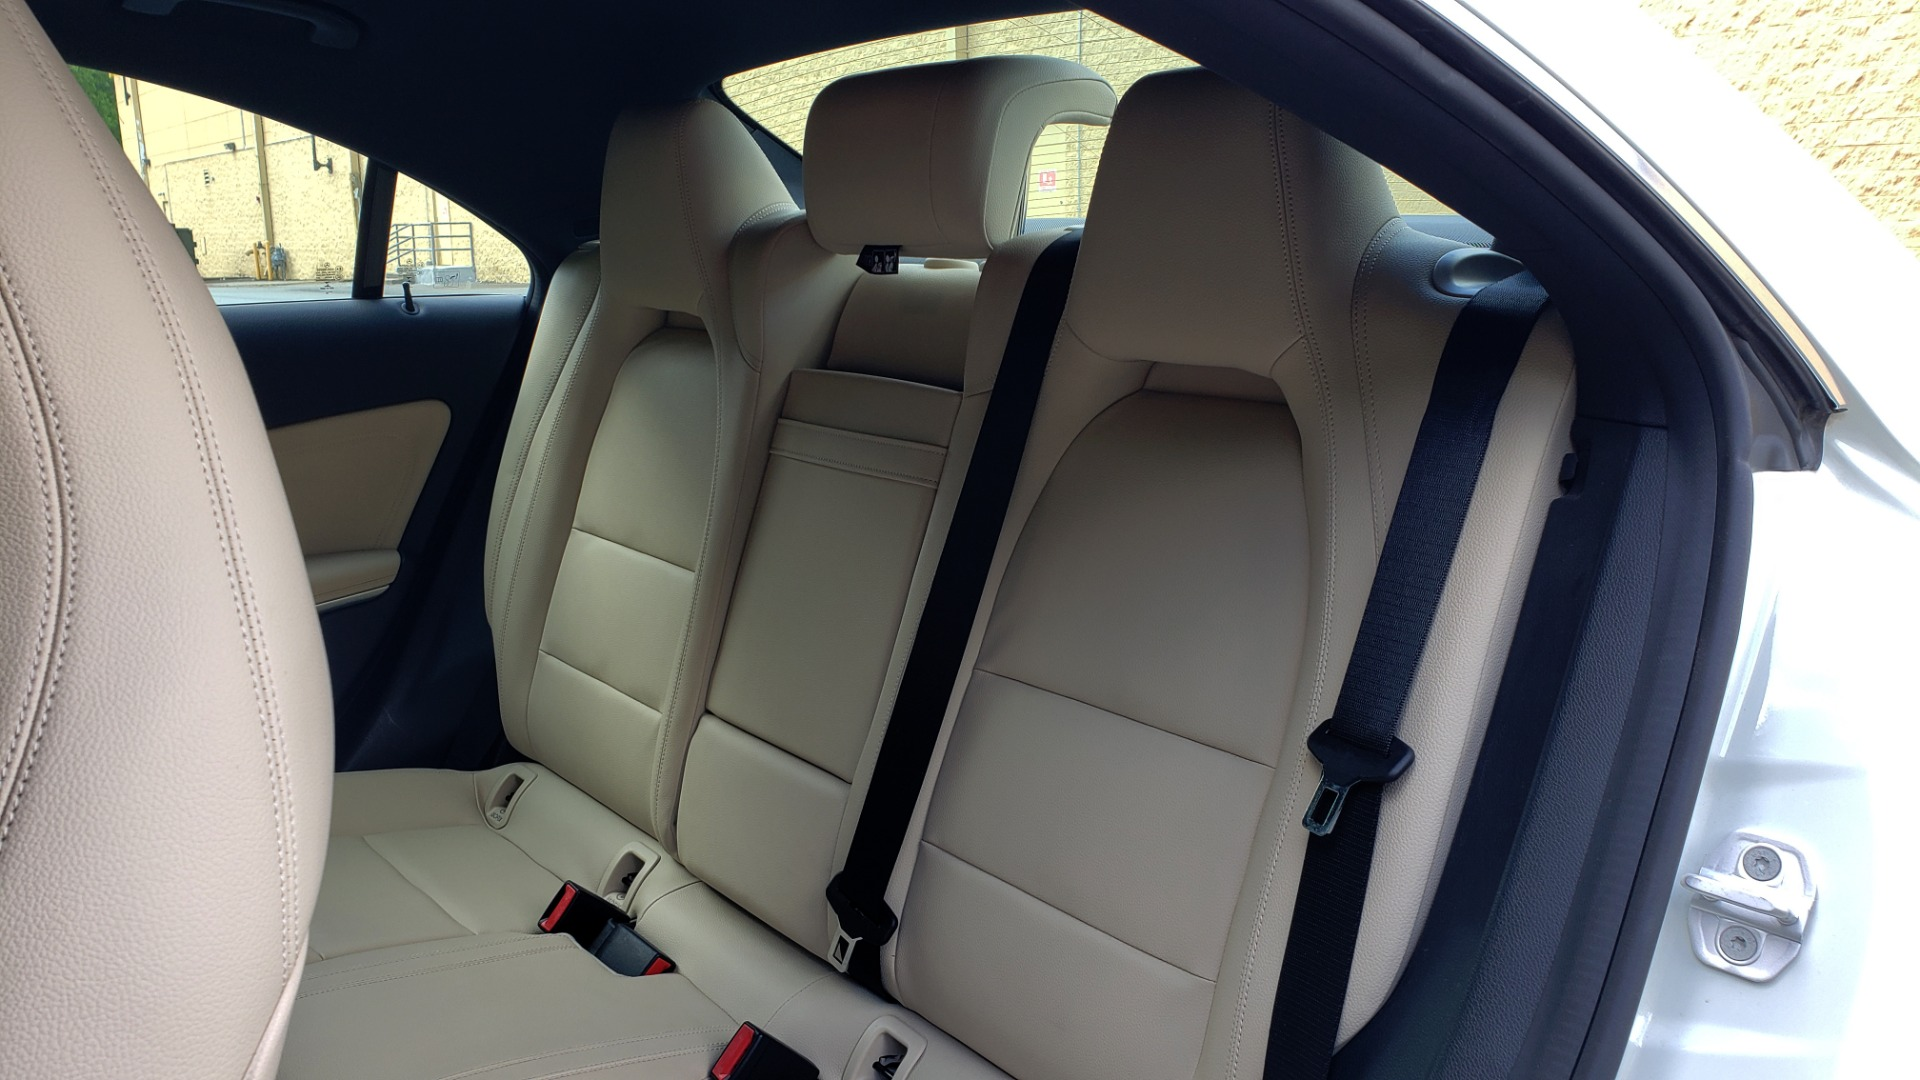 Used 2015 Mercedes-Benz CLA-Class CLA250 / FWD / SUNROOF / SPORT SUSP / CAMERA for sale Sold at Formula One Imports in Charlotte NC 28227 54